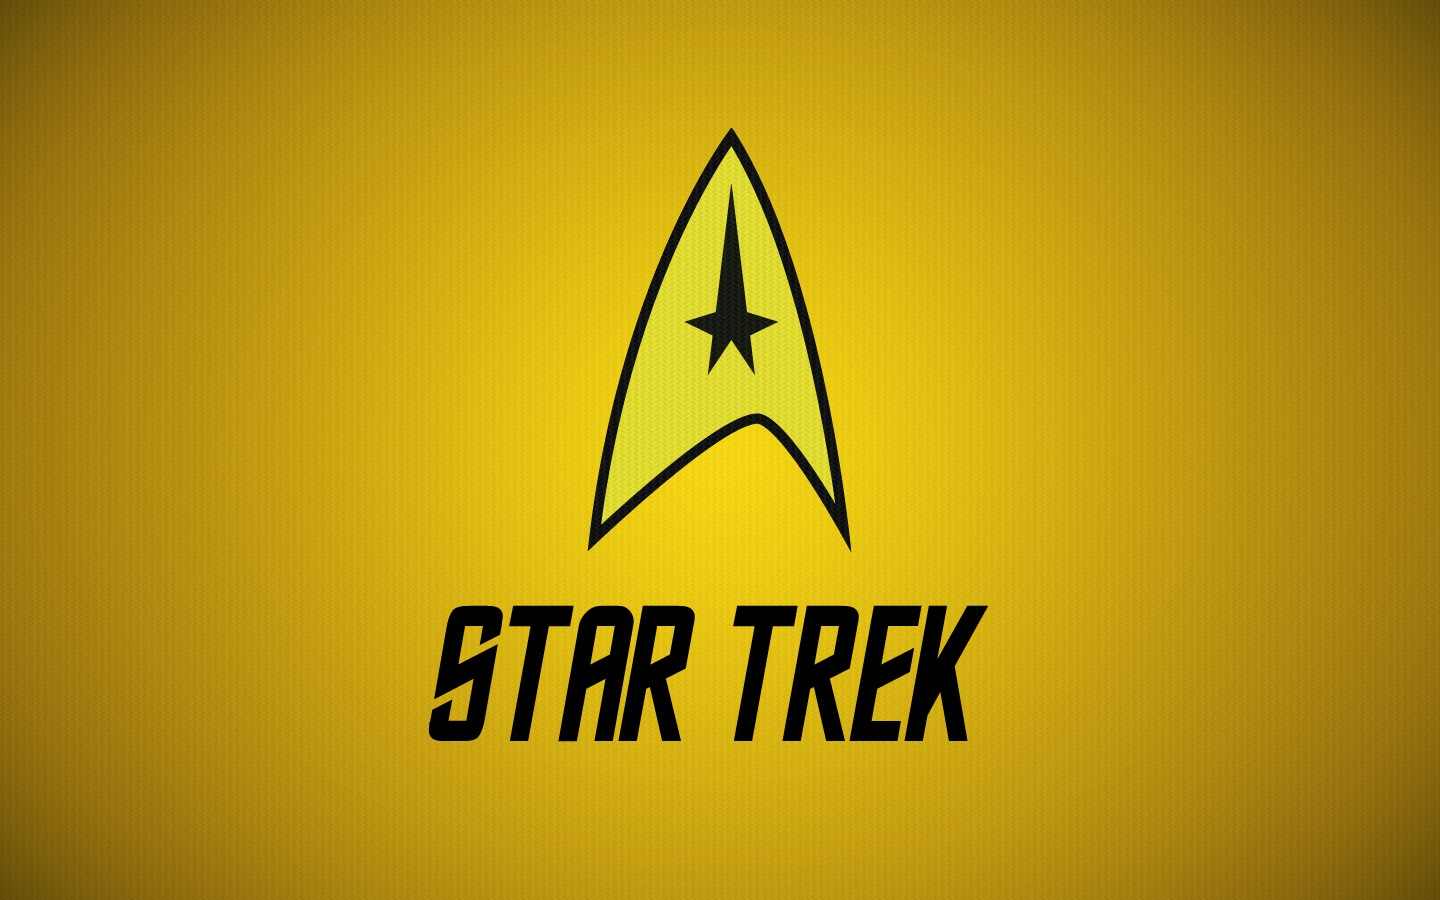 startrek wallpaper: Juni 2010